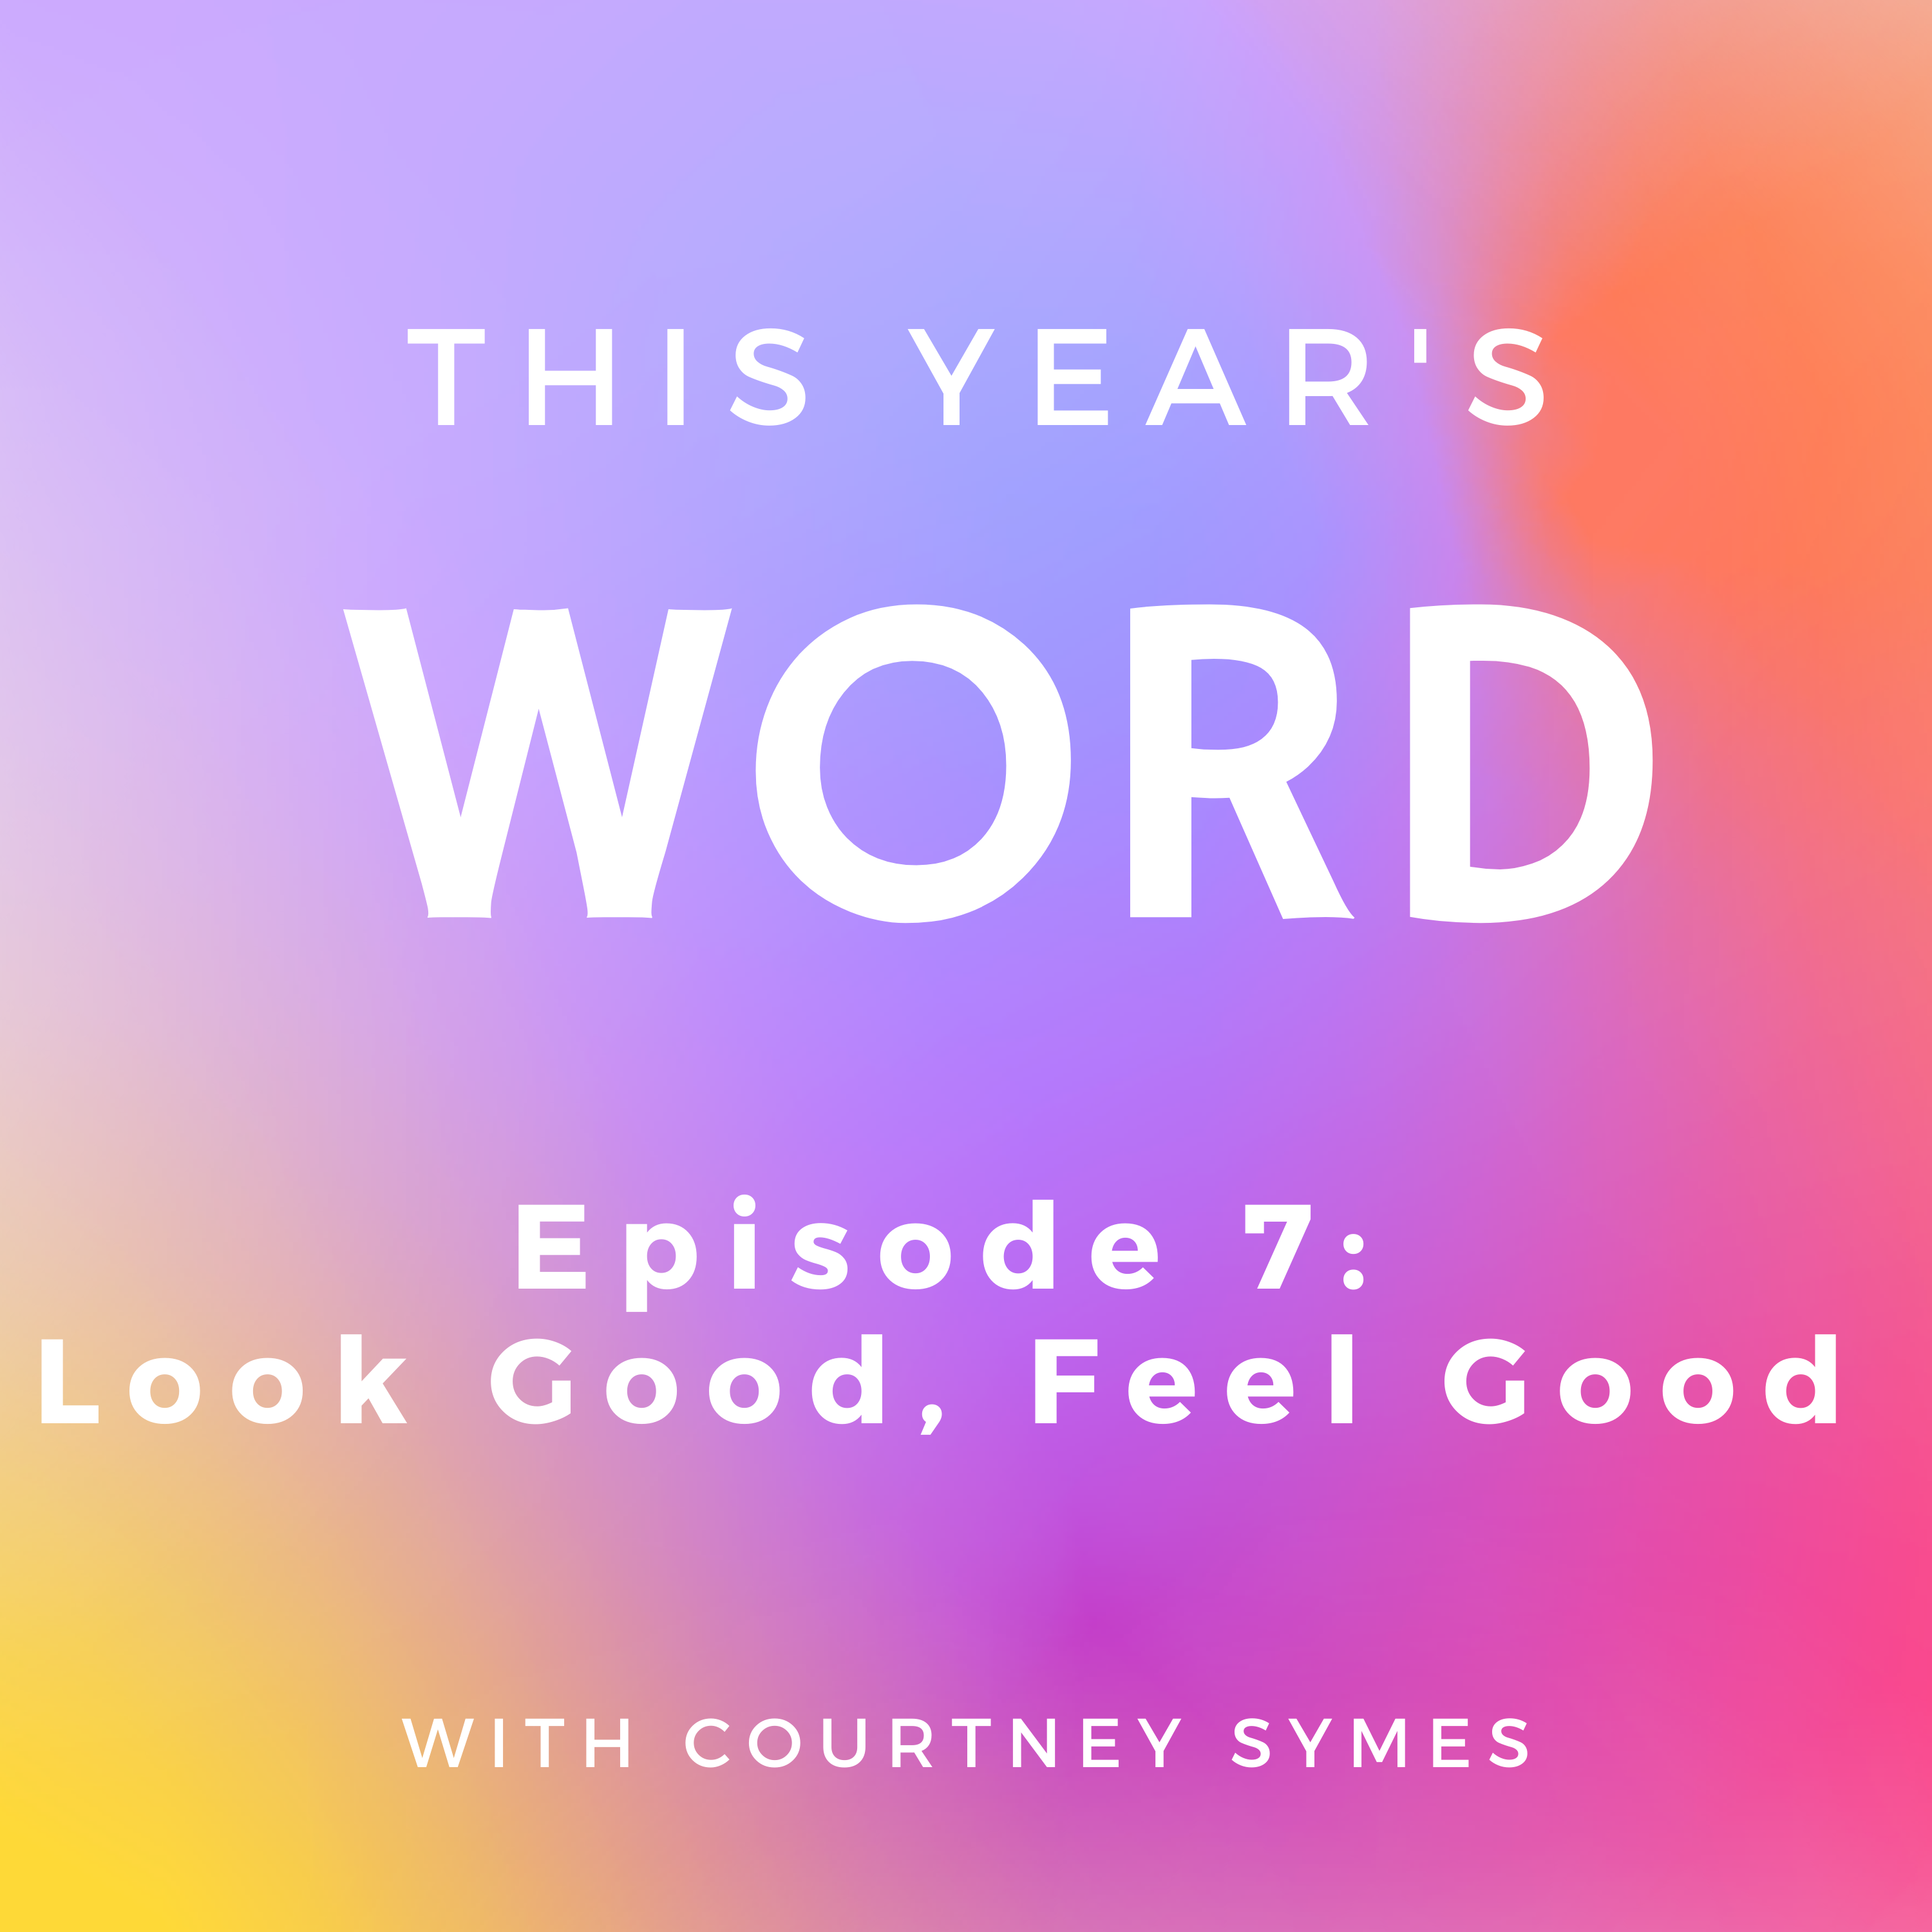 This Year's Word Podcast Shownotes: Episode 7, Look Good Feel Good